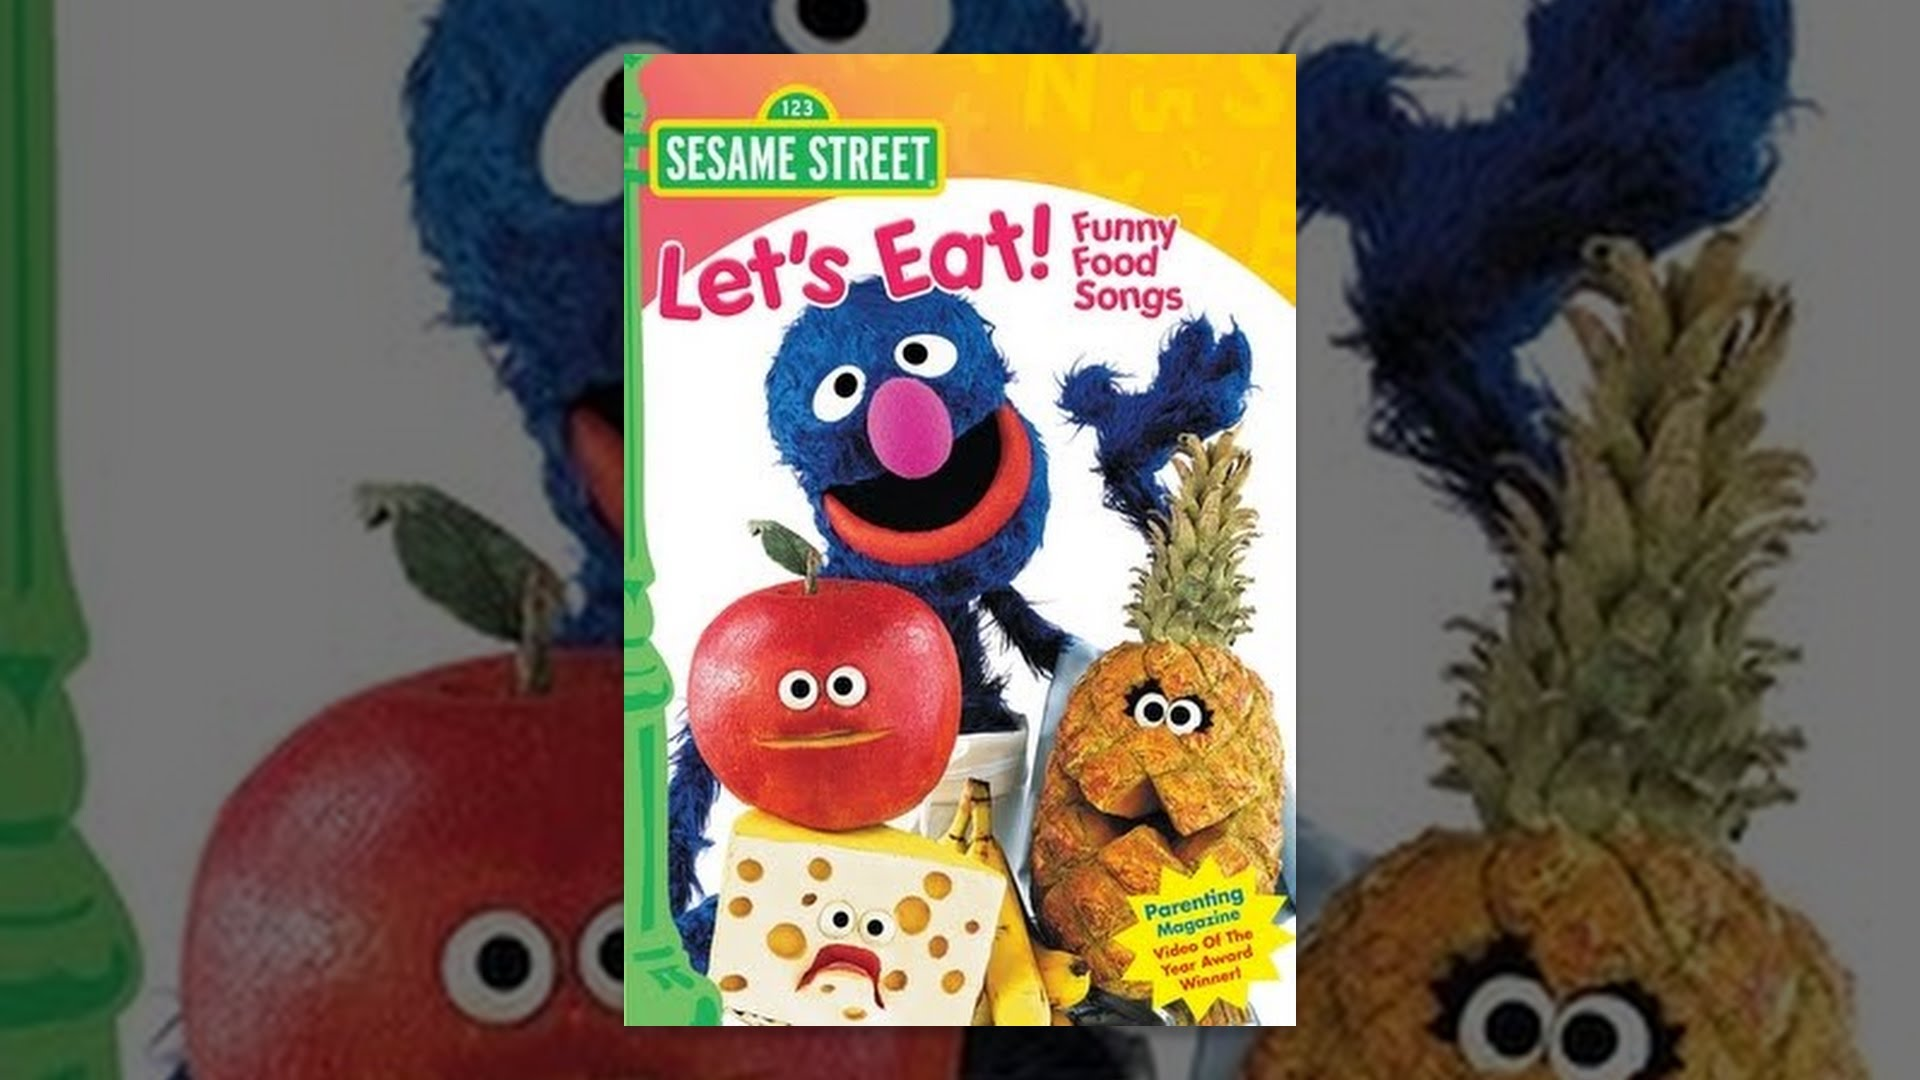 Sesame Street: Let's Eat! Funny Food Songs